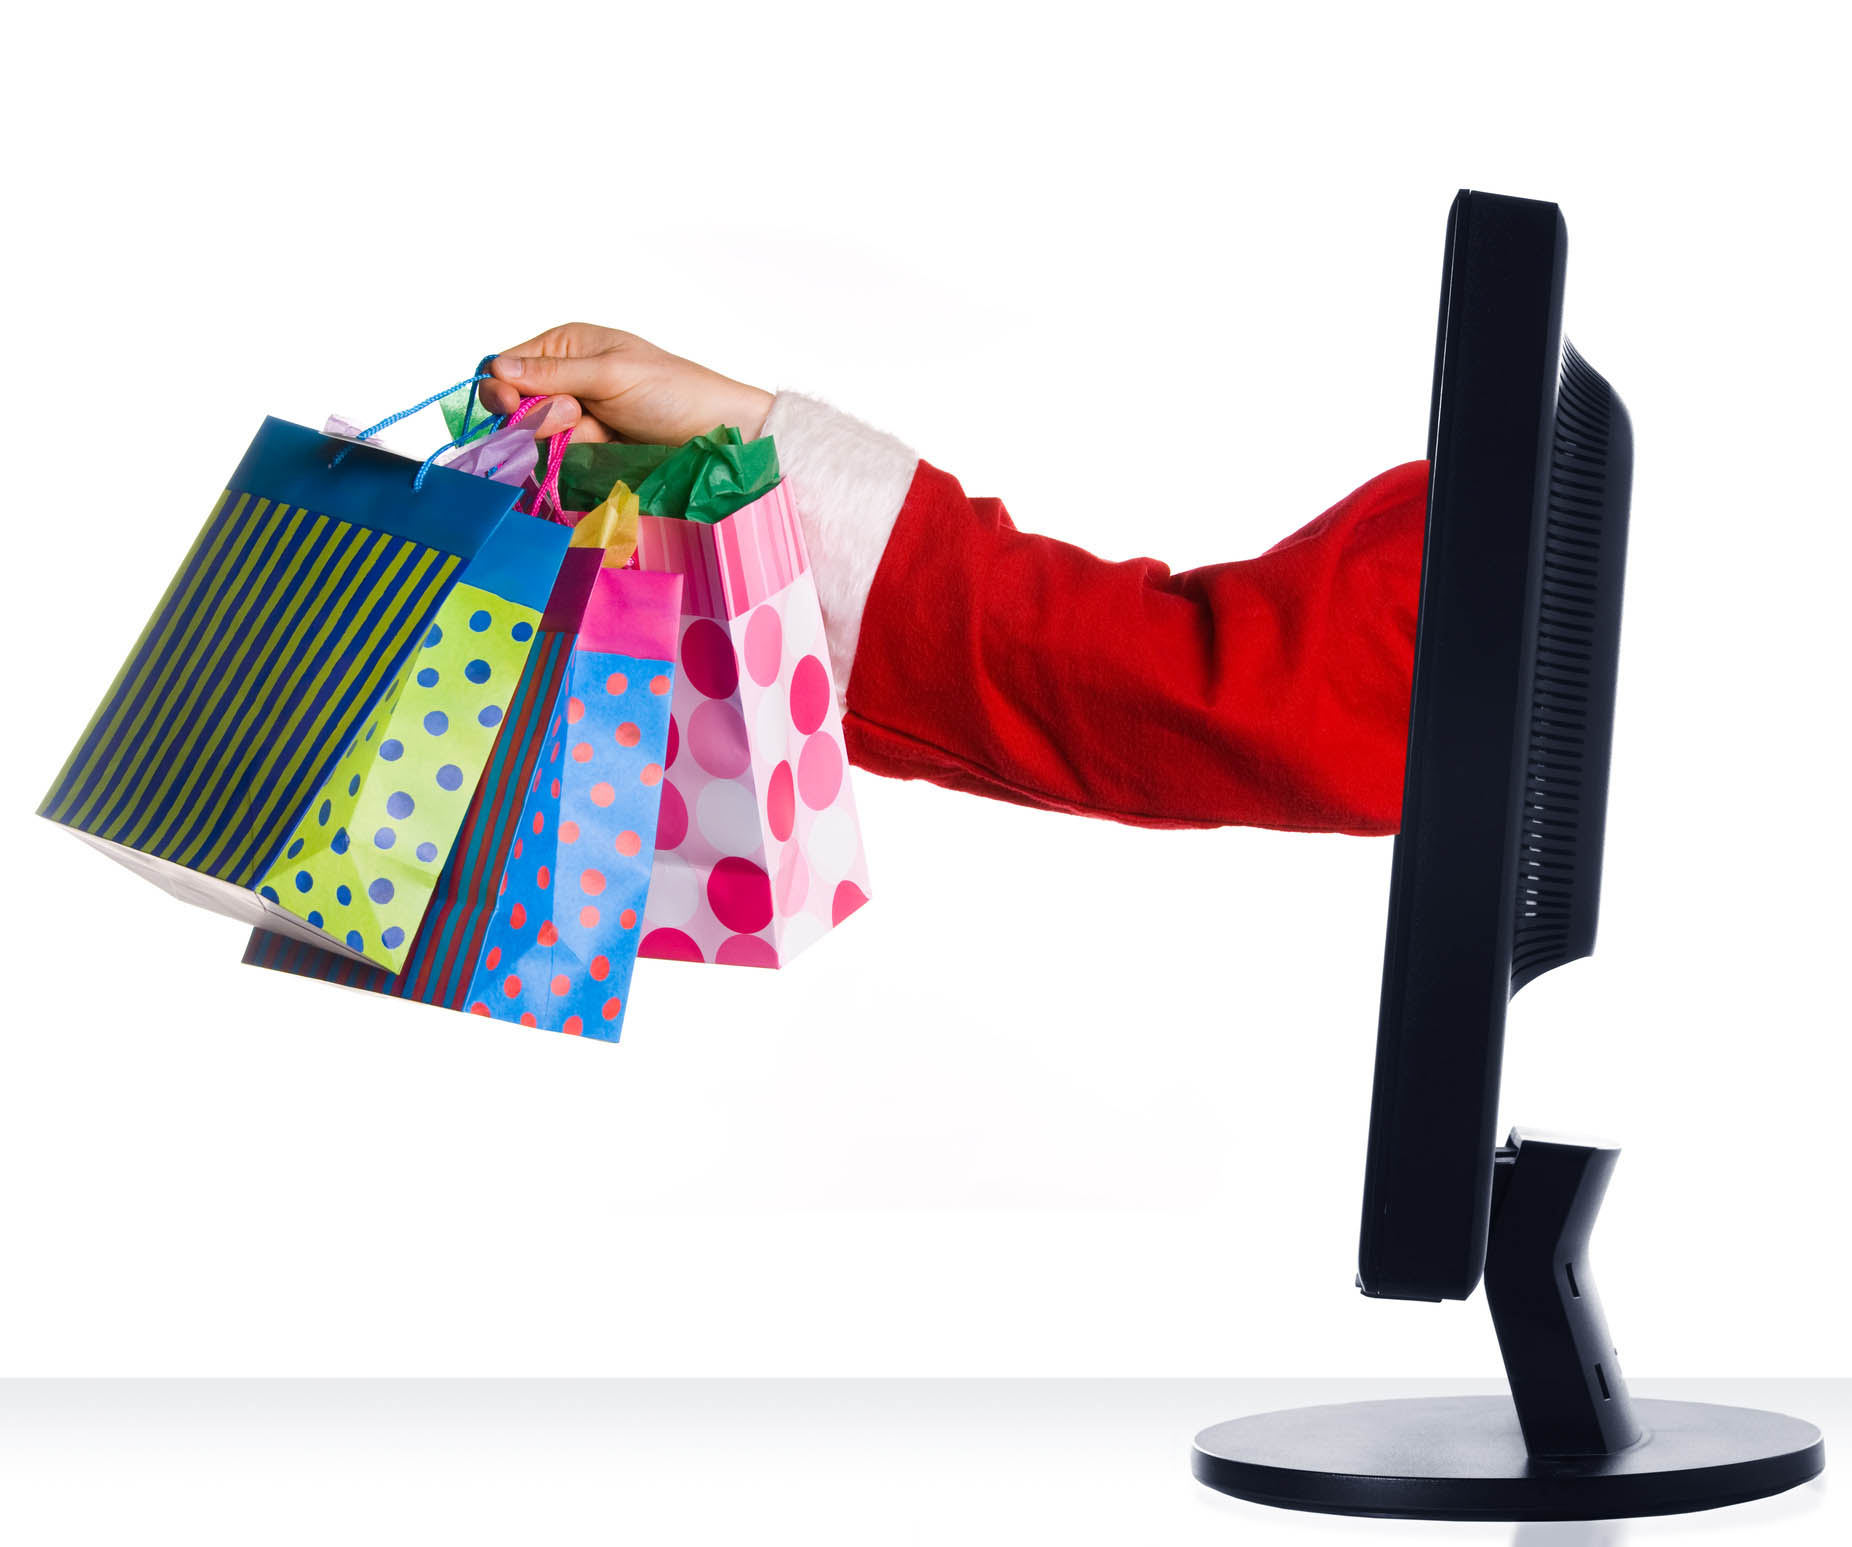 Secure Online Shopping Is Good News For All